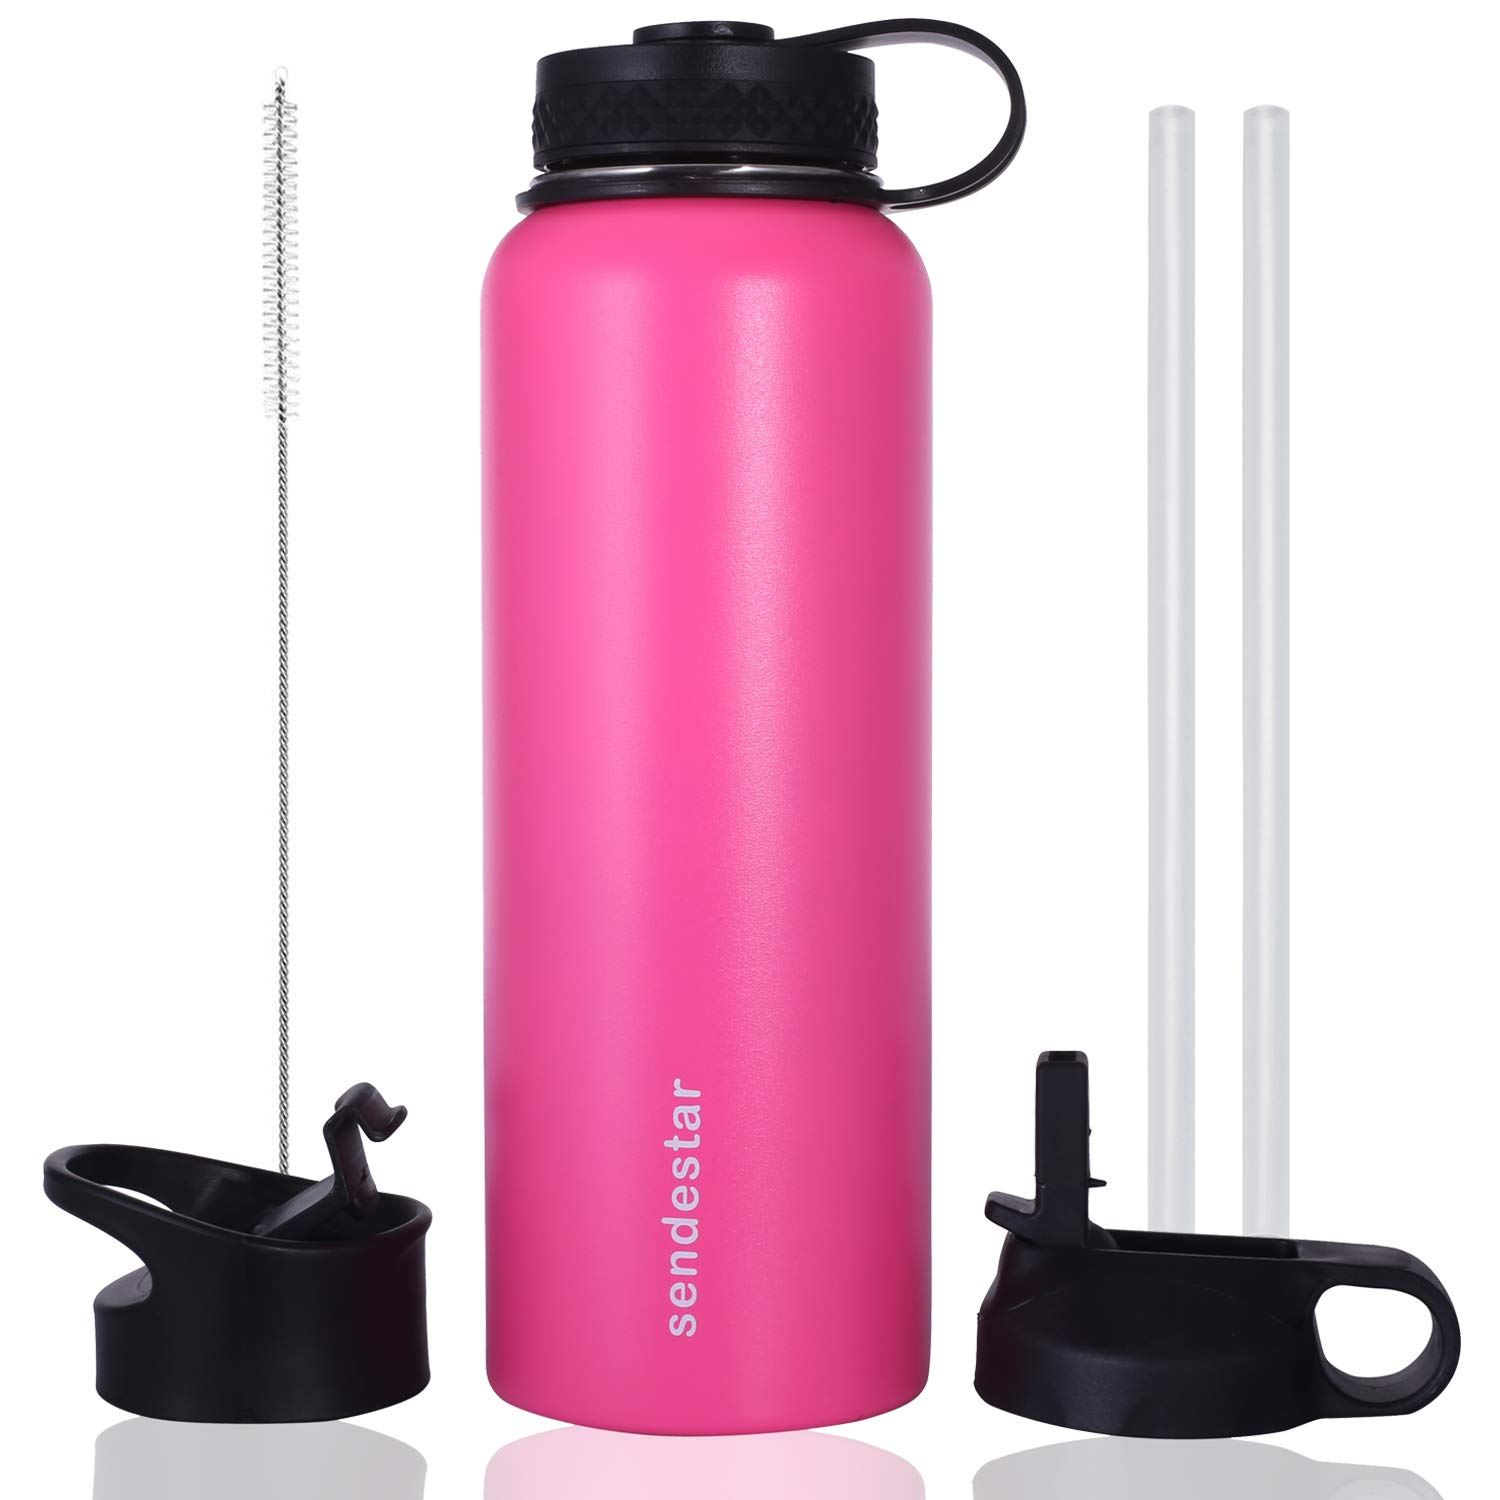 Sendestar 32 oz Double Wall Vacuum Insulated Leak Proof Stainless Steel Sports Water Bottle—Wide Mouth with Straw Lid & Flat Cap & Flip Lid (Pink)